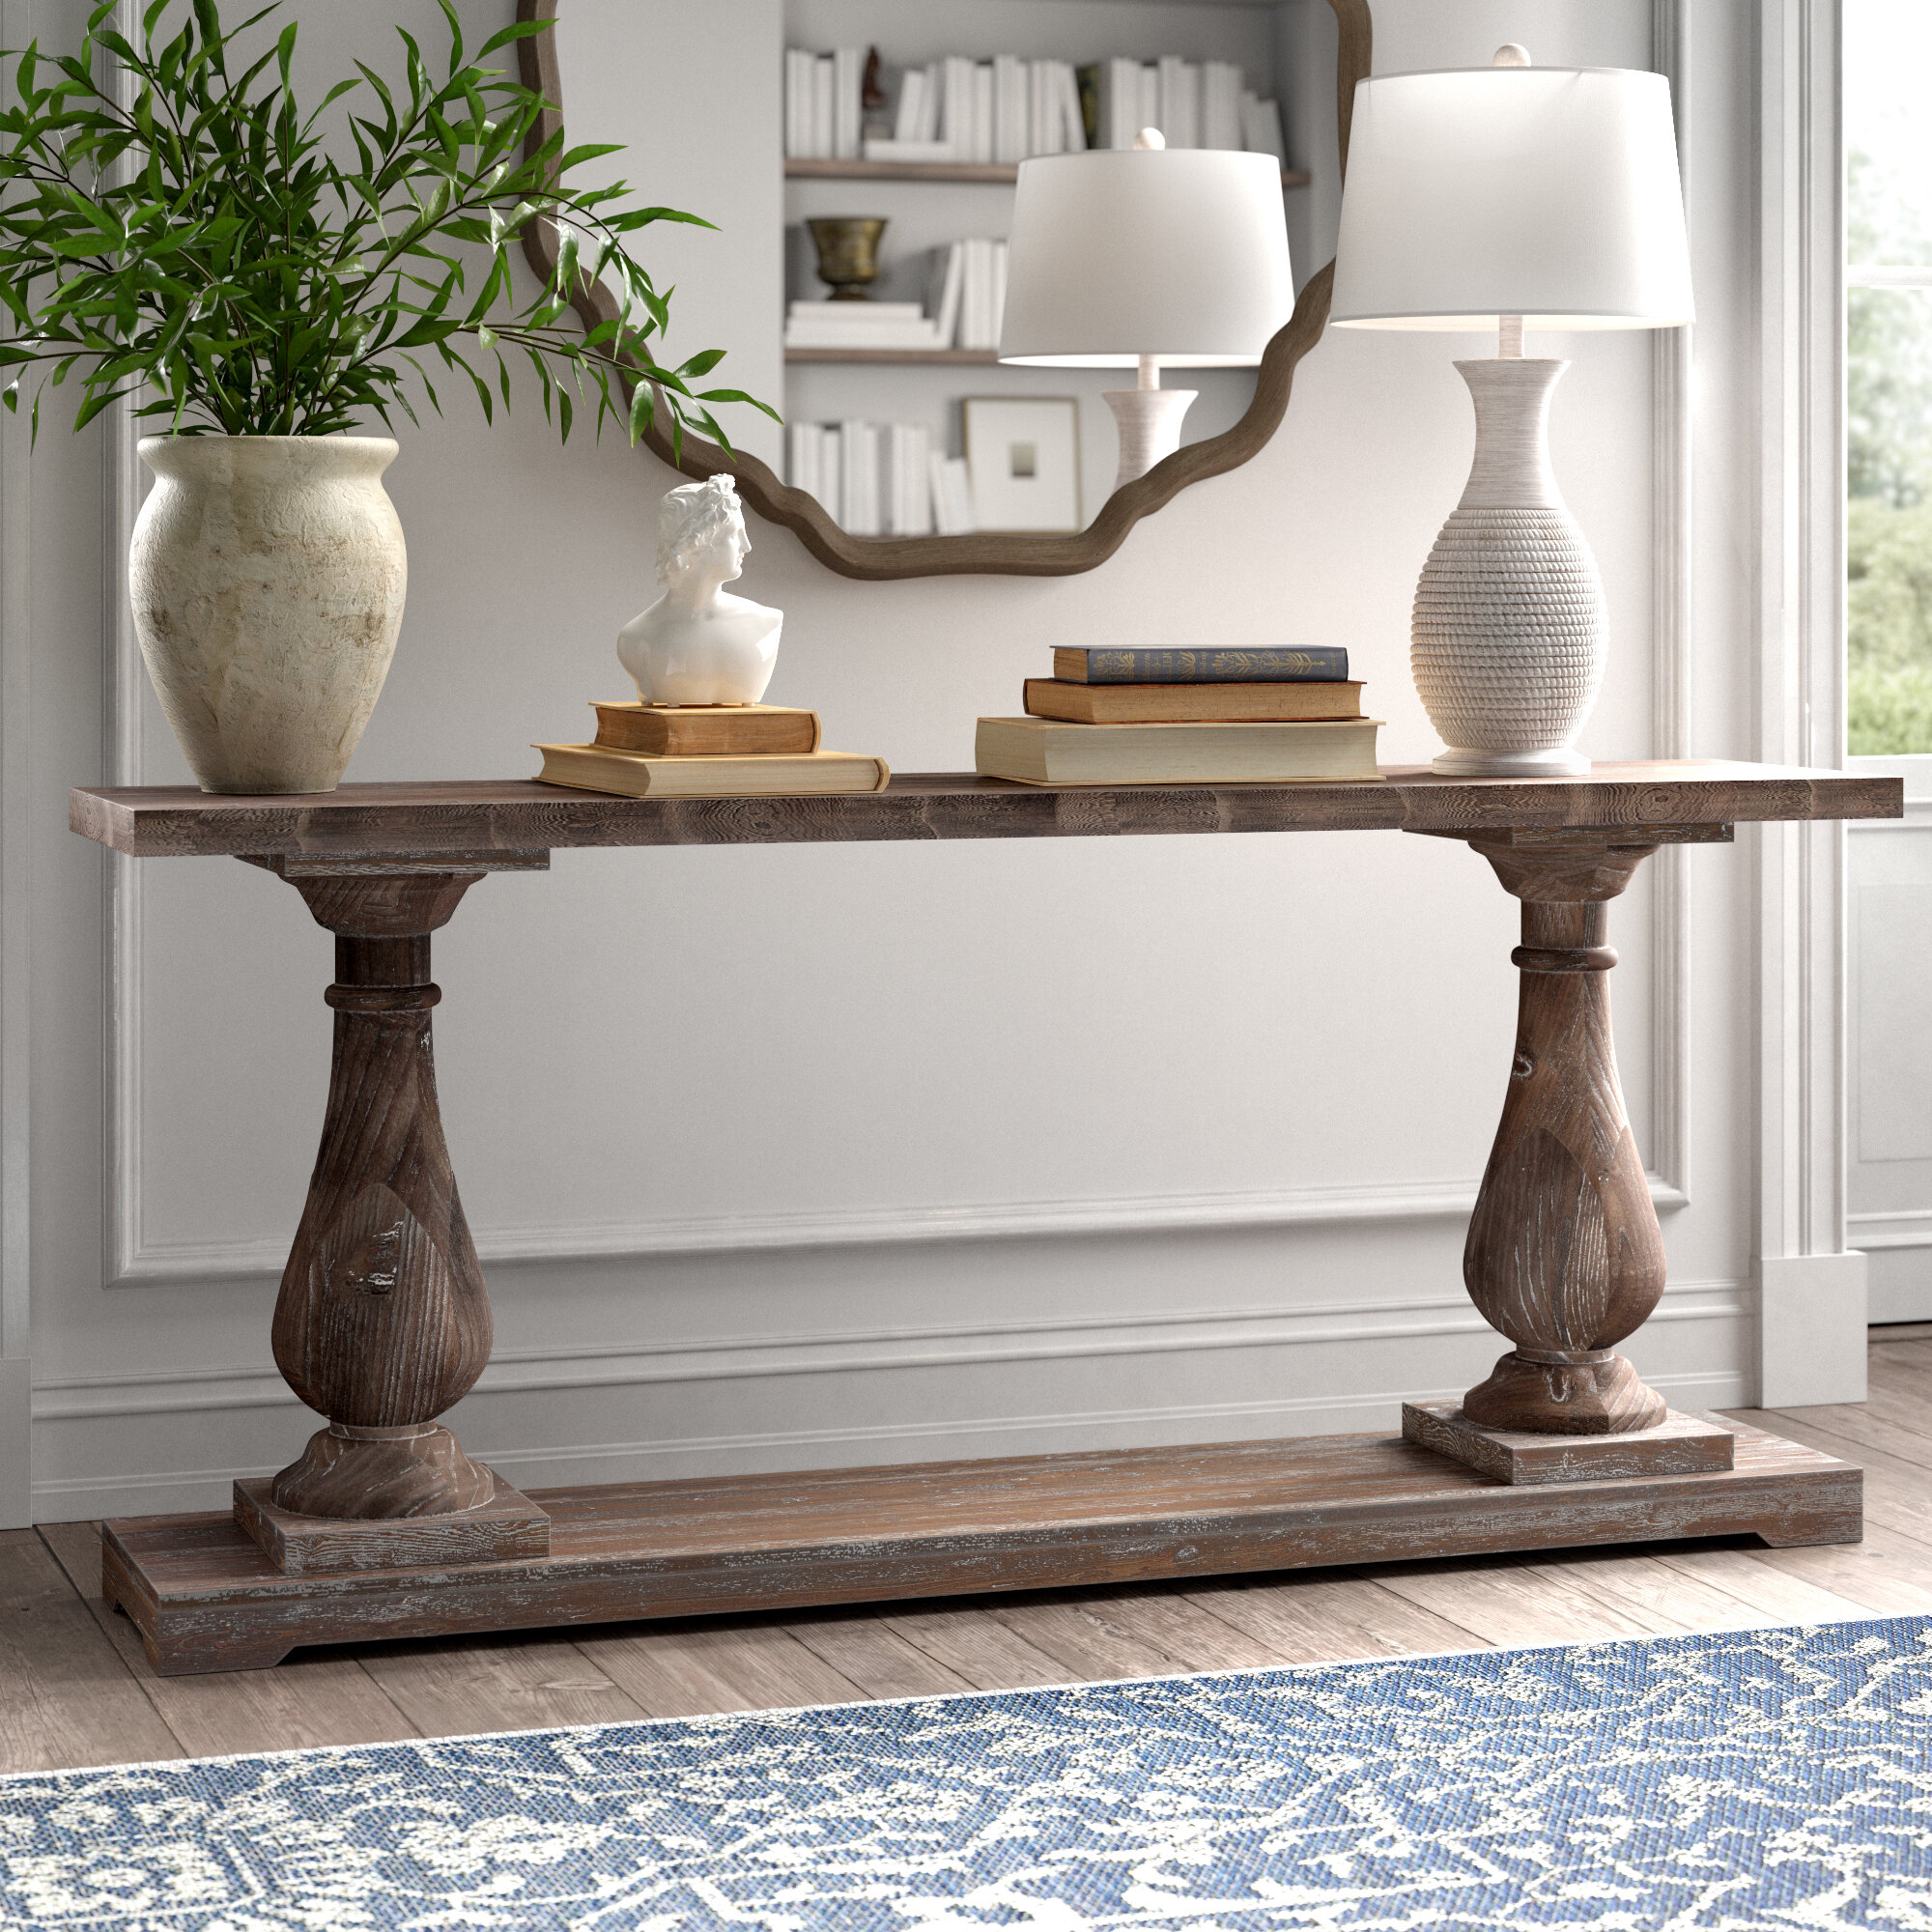 Kelly Clarkson Home Console Tables You Ll Love In 2021 Wayfair